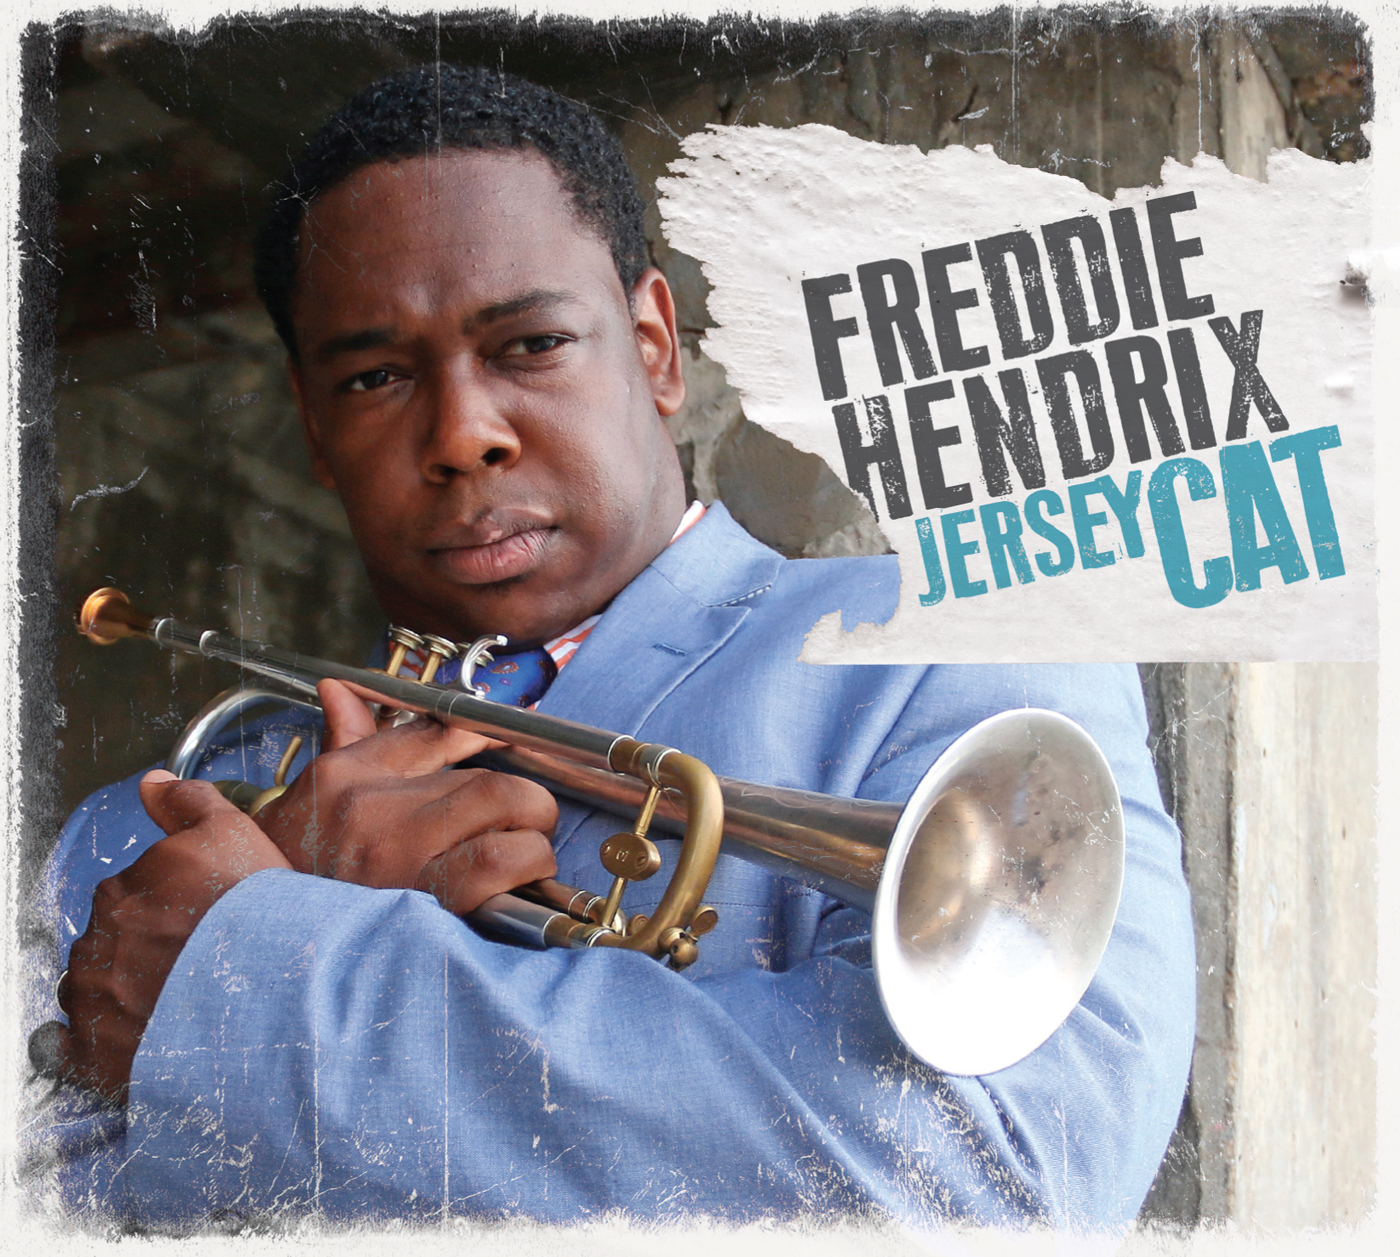 Jersey Cat  by Freddie  Hendrix cover